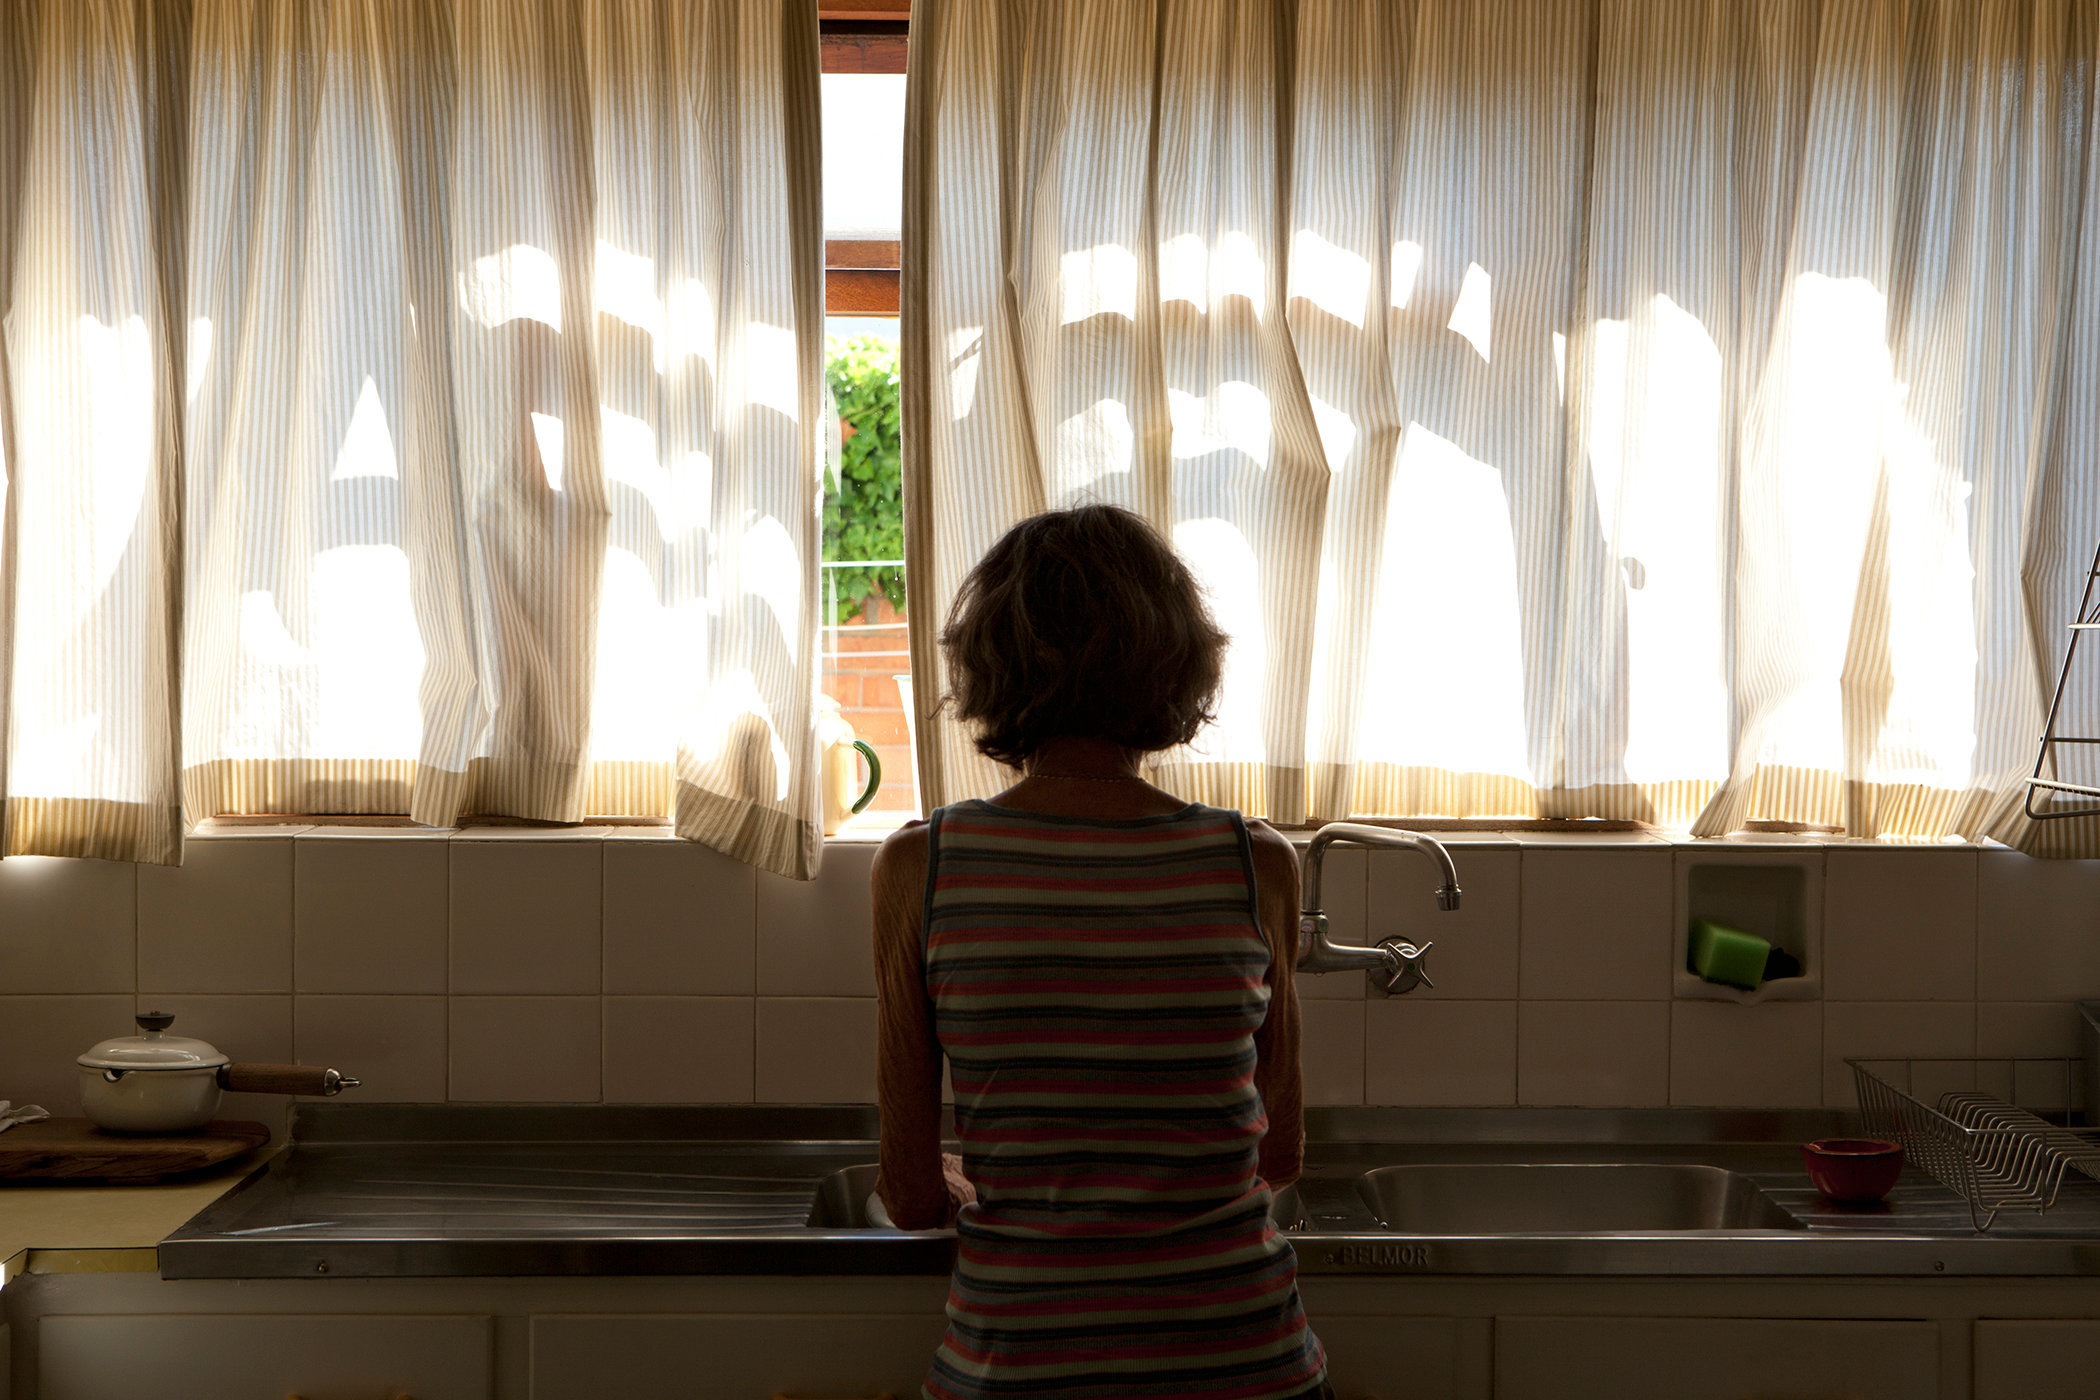 Doing the dishes 17_07_05.jpg